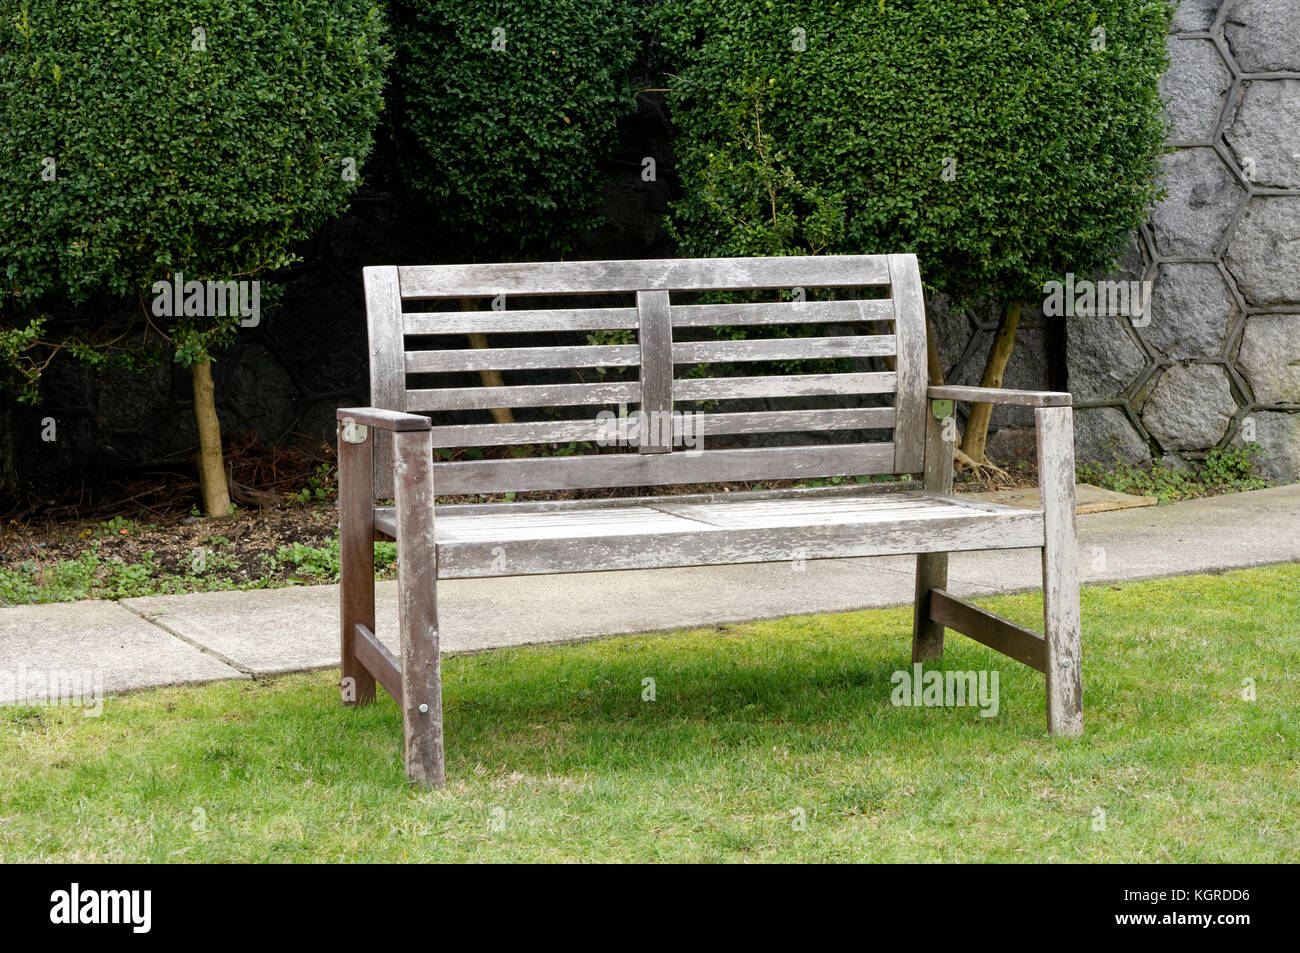 Unoccupied empty wooden bench on the front lawn of a house - Stock Image